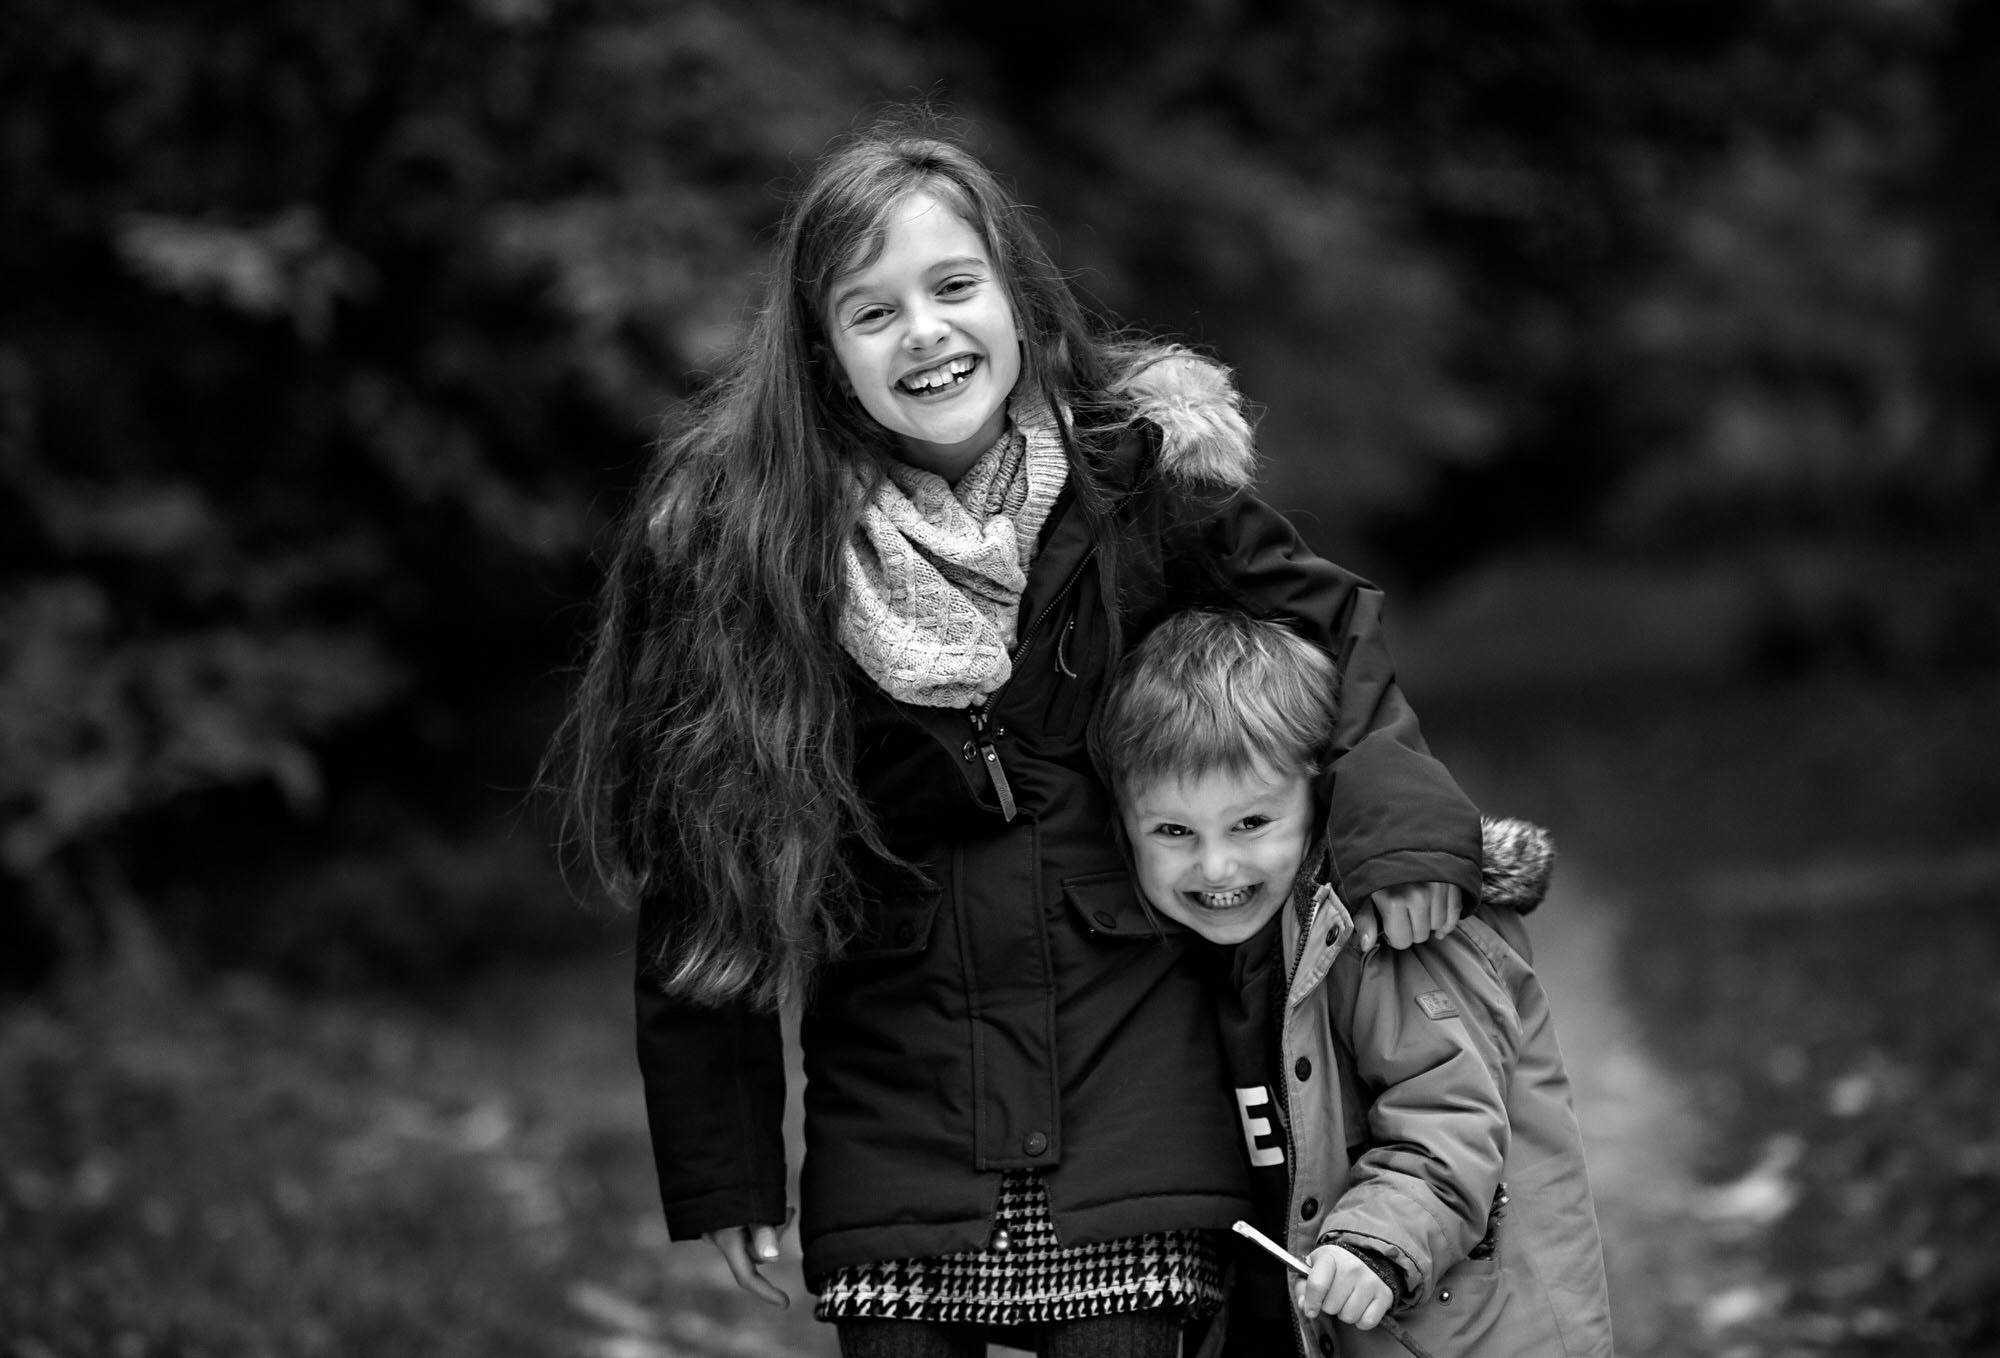 Family photoshoot outdoors, Barnsley based photographer